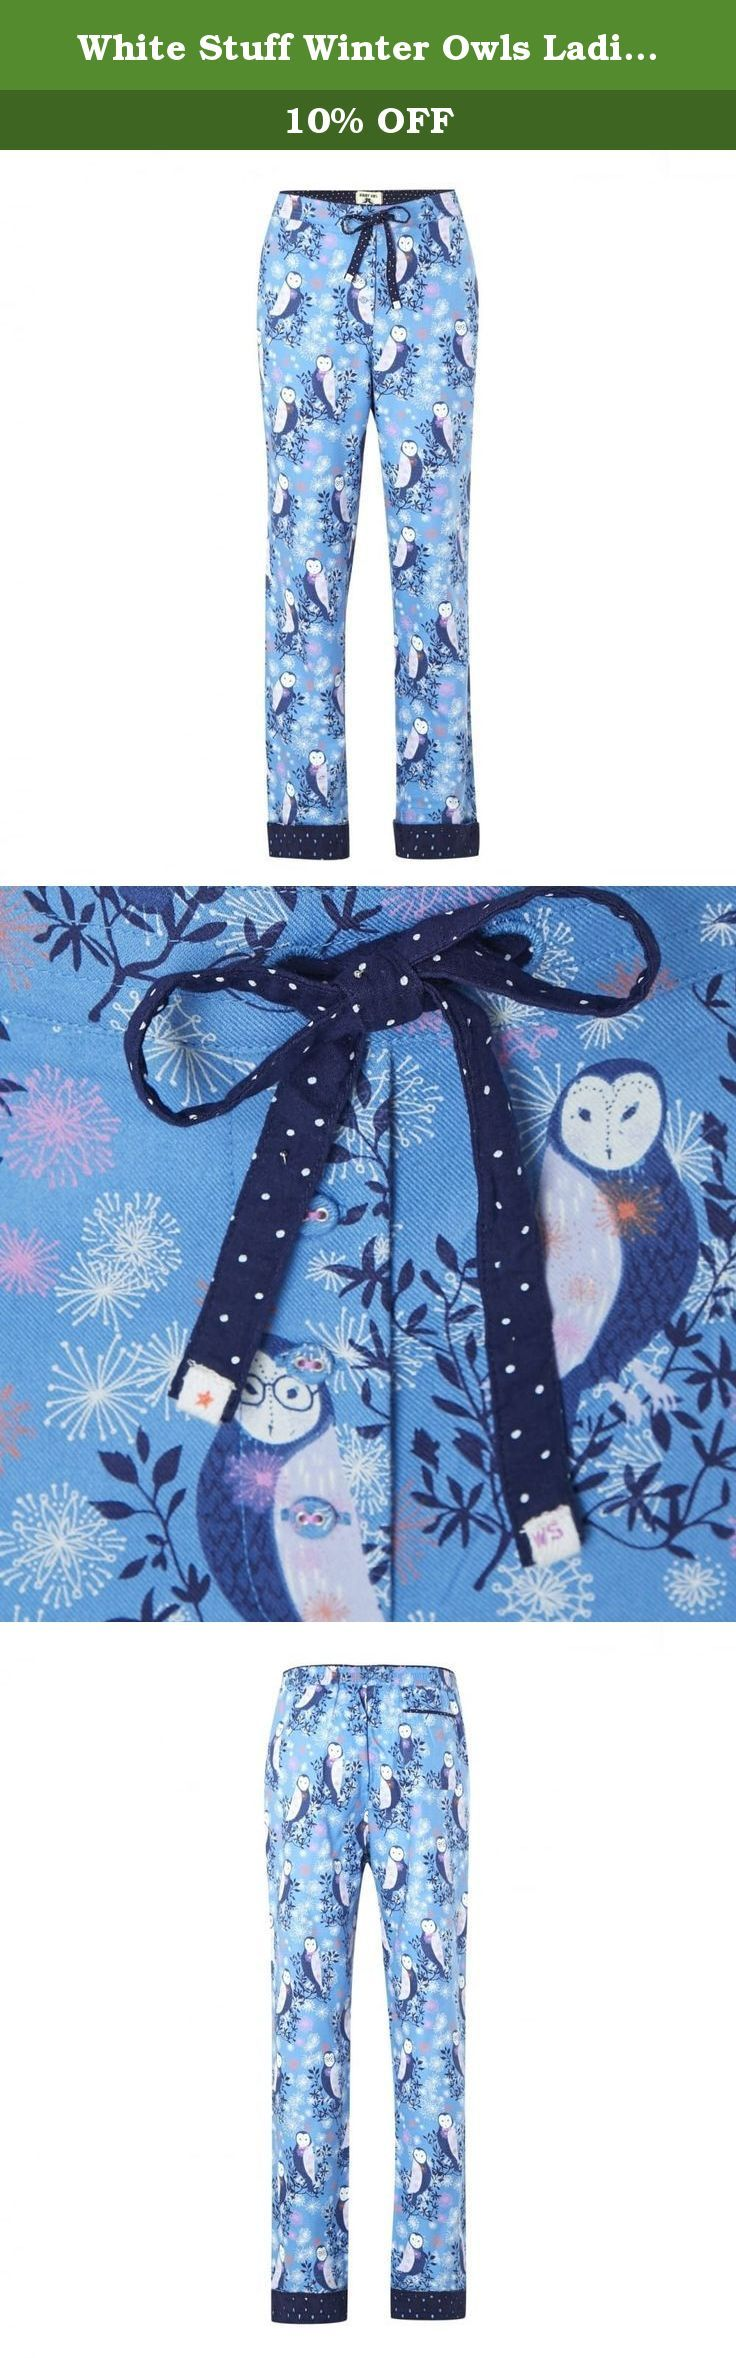 White Stuff Winter Owls Ladies Pj Bottom M Corn Blue. Update your pjs for the new season. Comfy, cute and made from cotton-twill, these bottoms have an easy elastic waist. In case the adorable Winter Owl print isn't enough for you, we've trimmed them in boderie panels that the cuffs, too. Composition: 100% Cotton Care: Machine Washable.